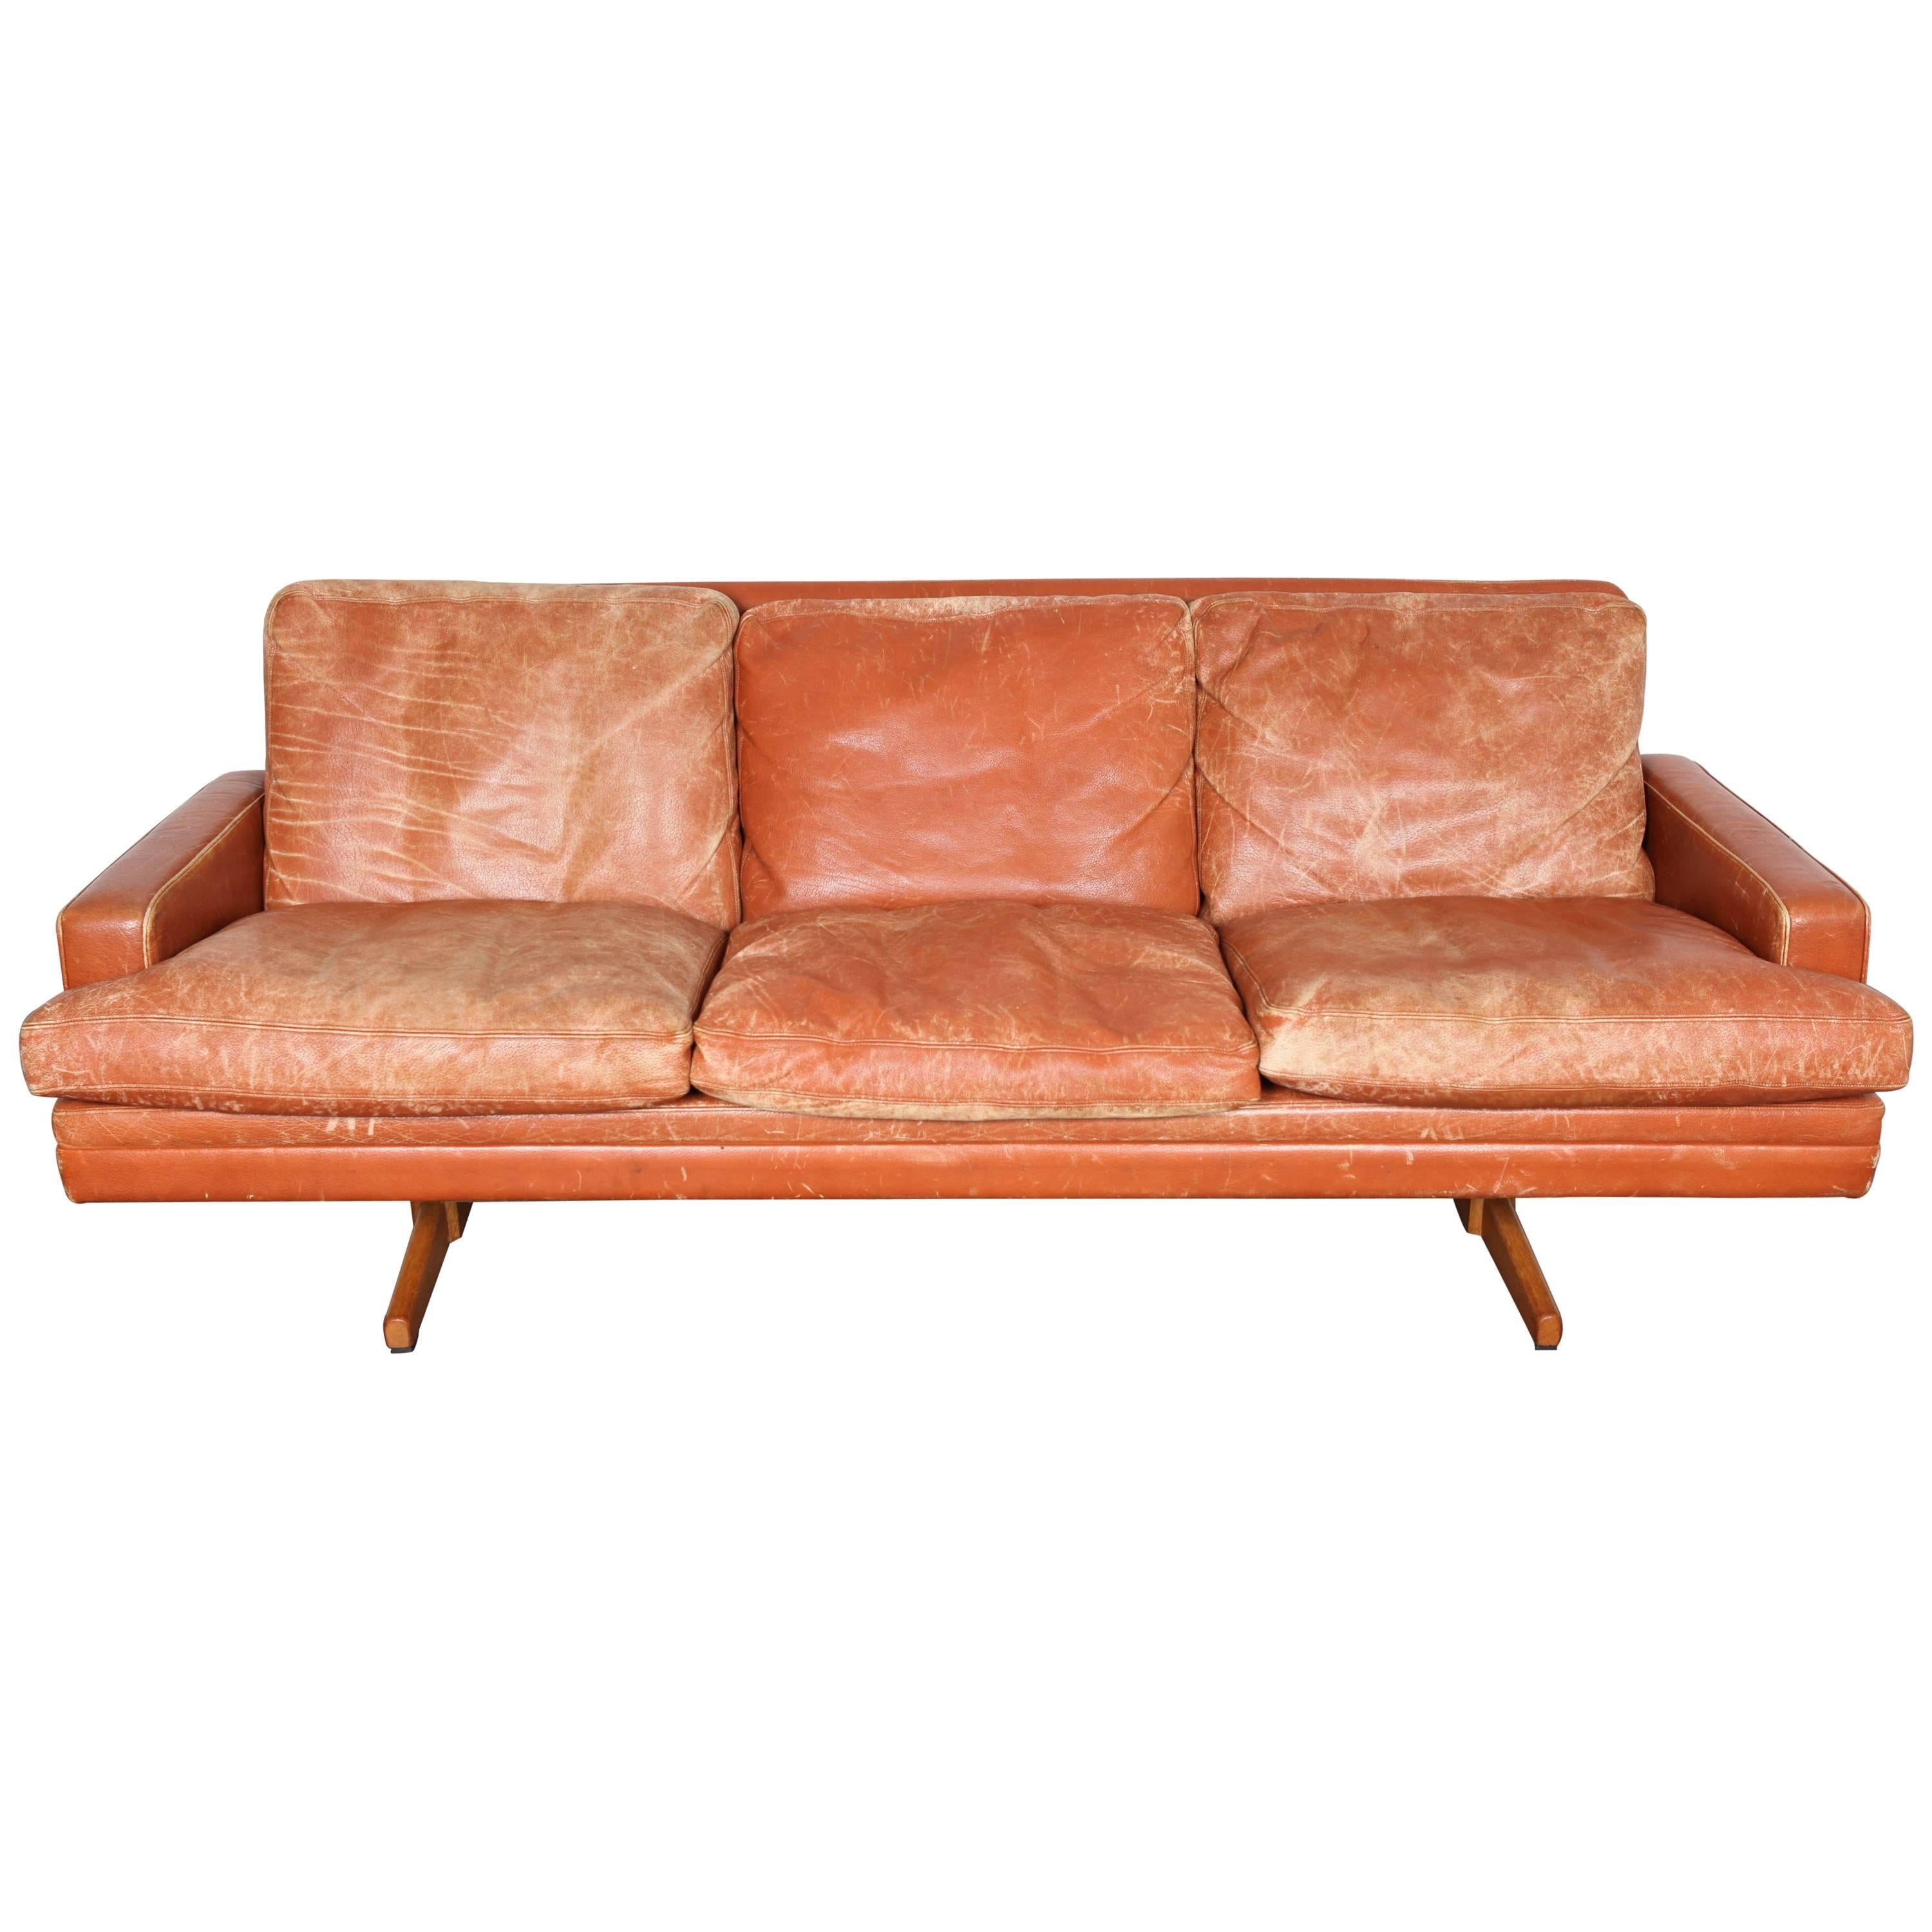 Norwegian Mid Century Modern Burnt Orange Leather Sofa By Fredrik Kayser 1